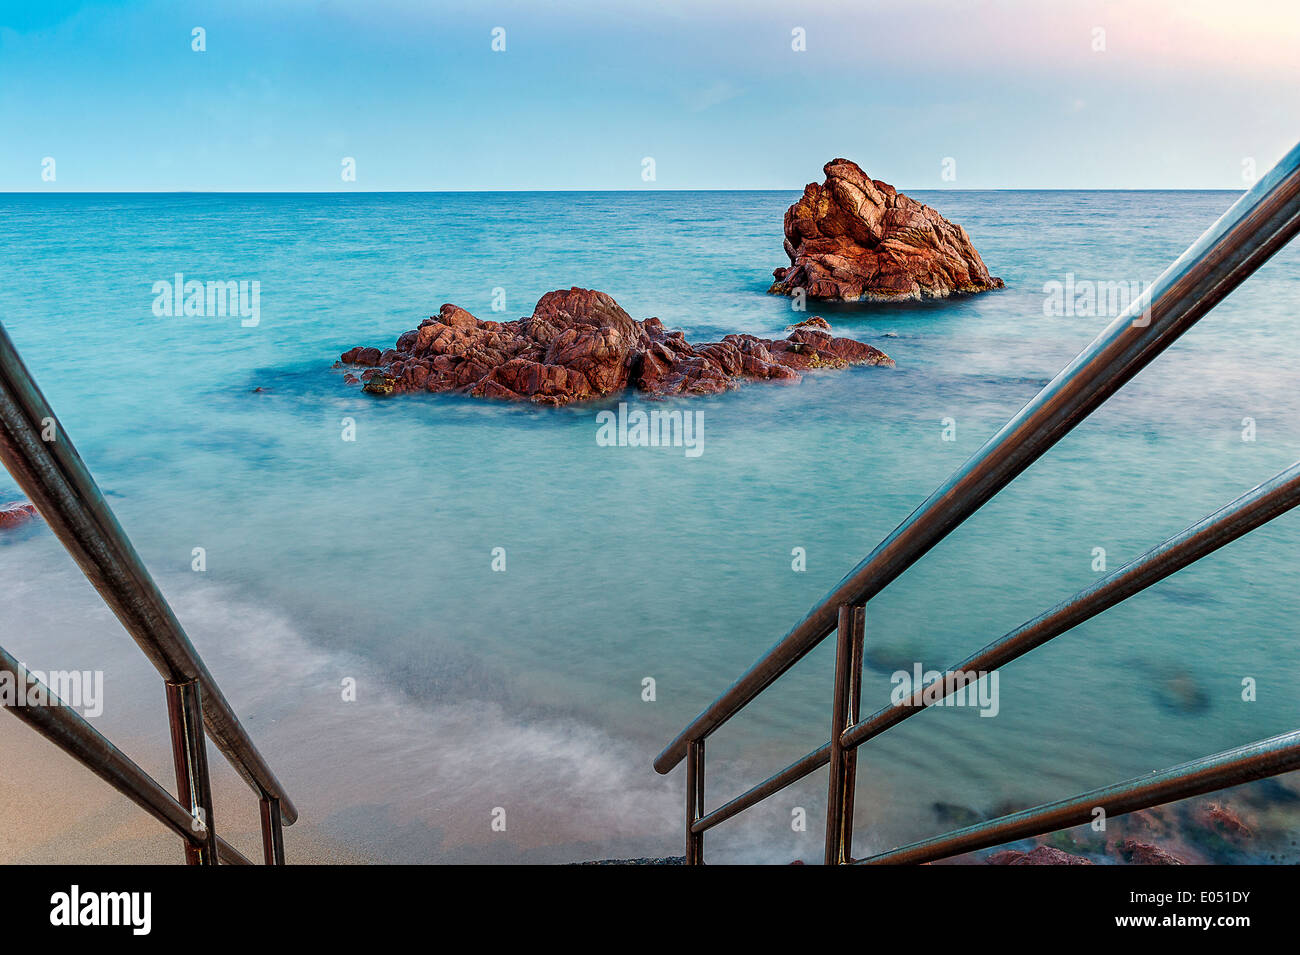 Europe, France, Alpes-Maritimes, Cannes. Red rock at dusk. - Stock Image